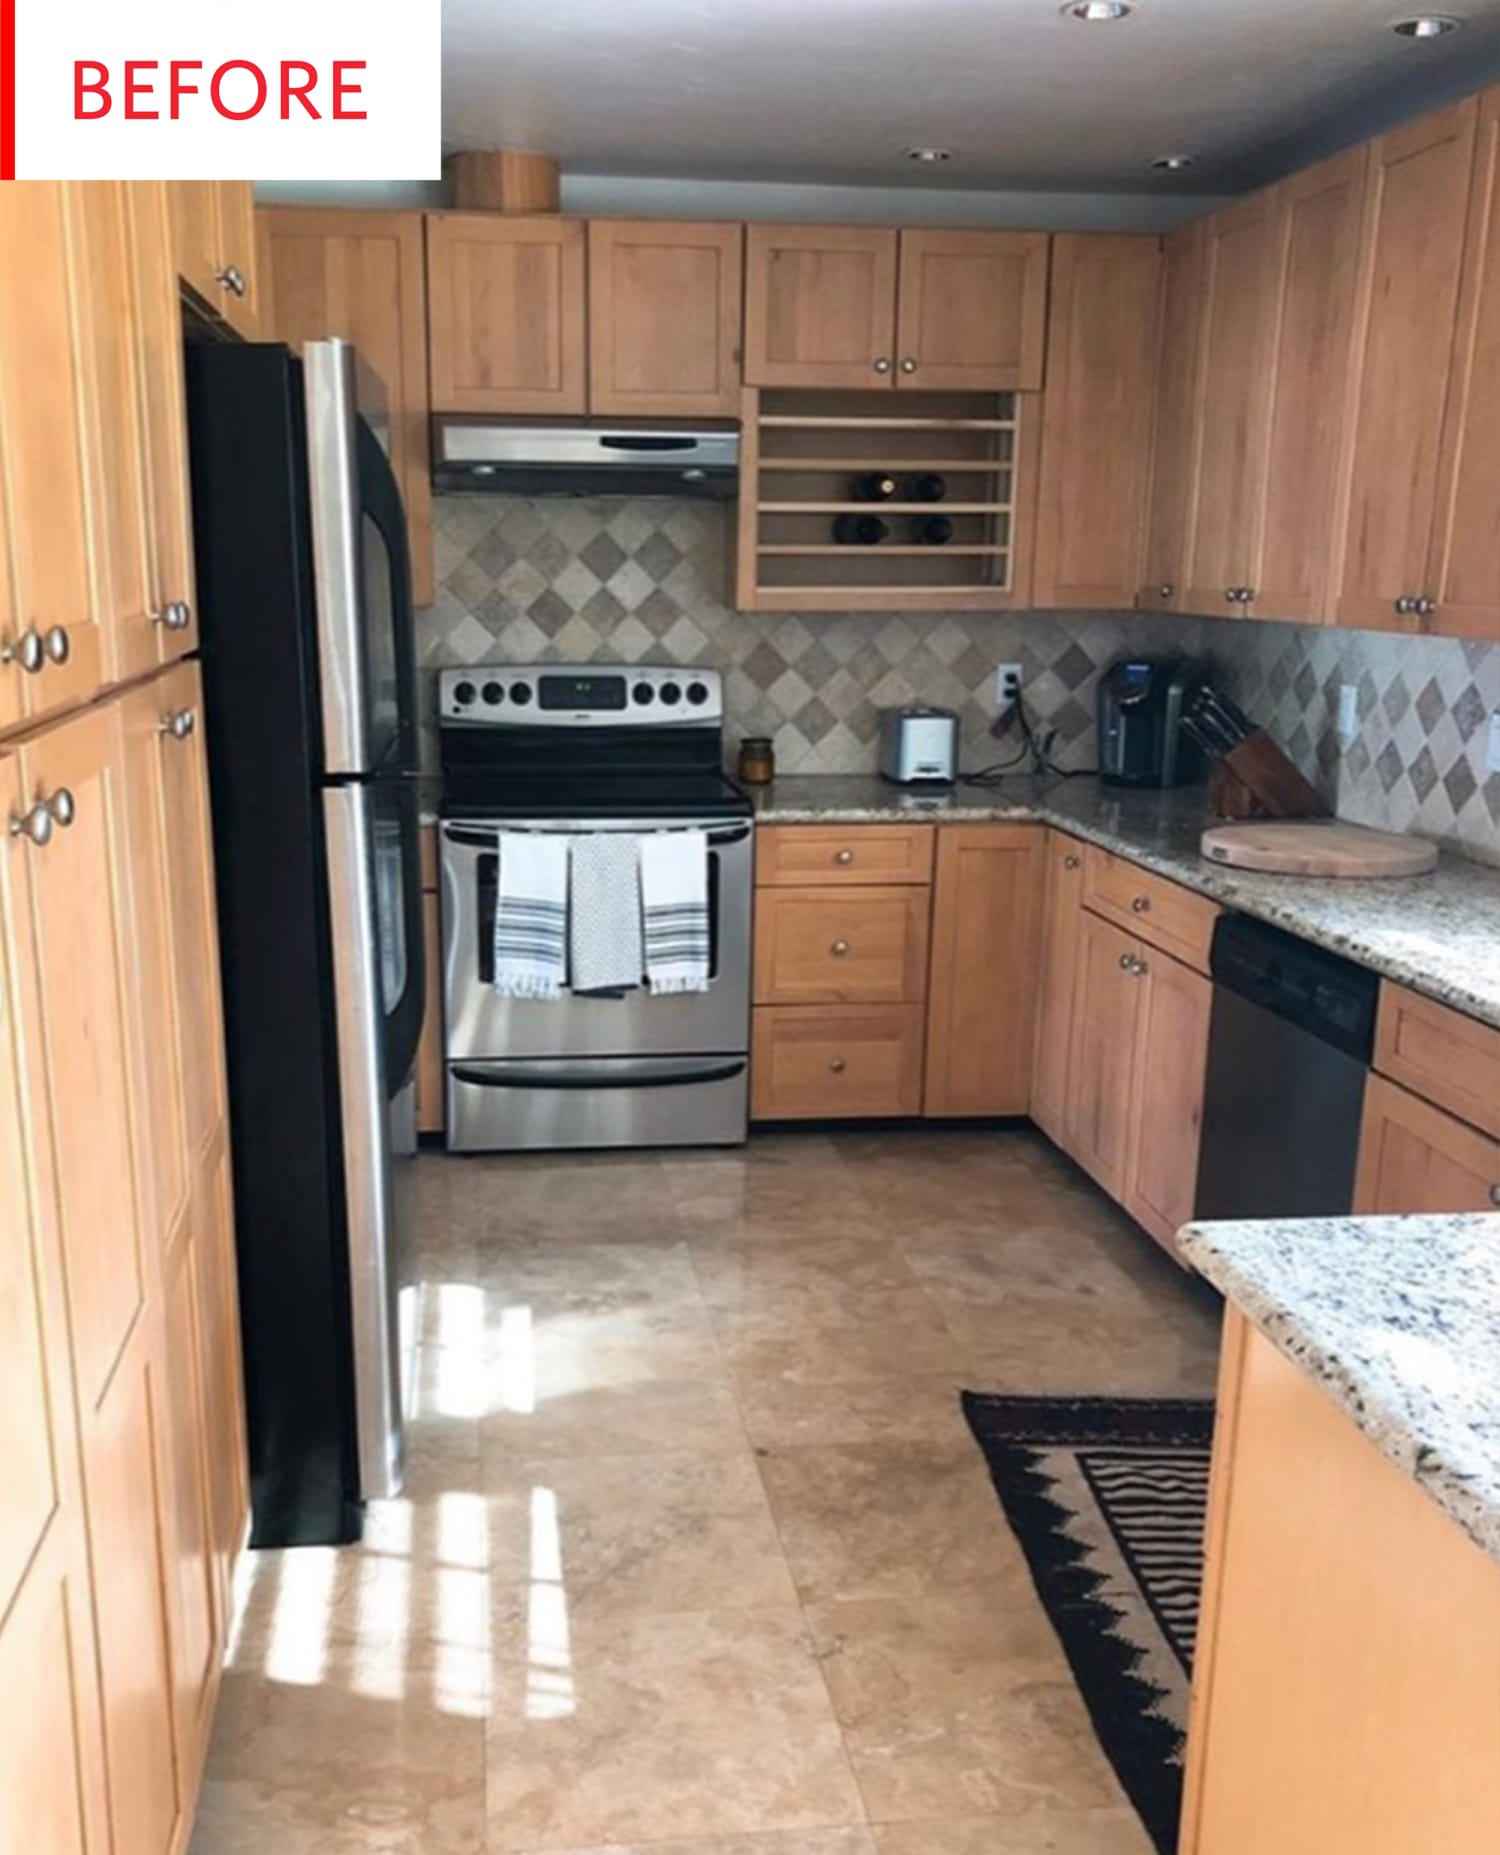 Before & After: This Kitchen Was Totally Transformed for Only $900